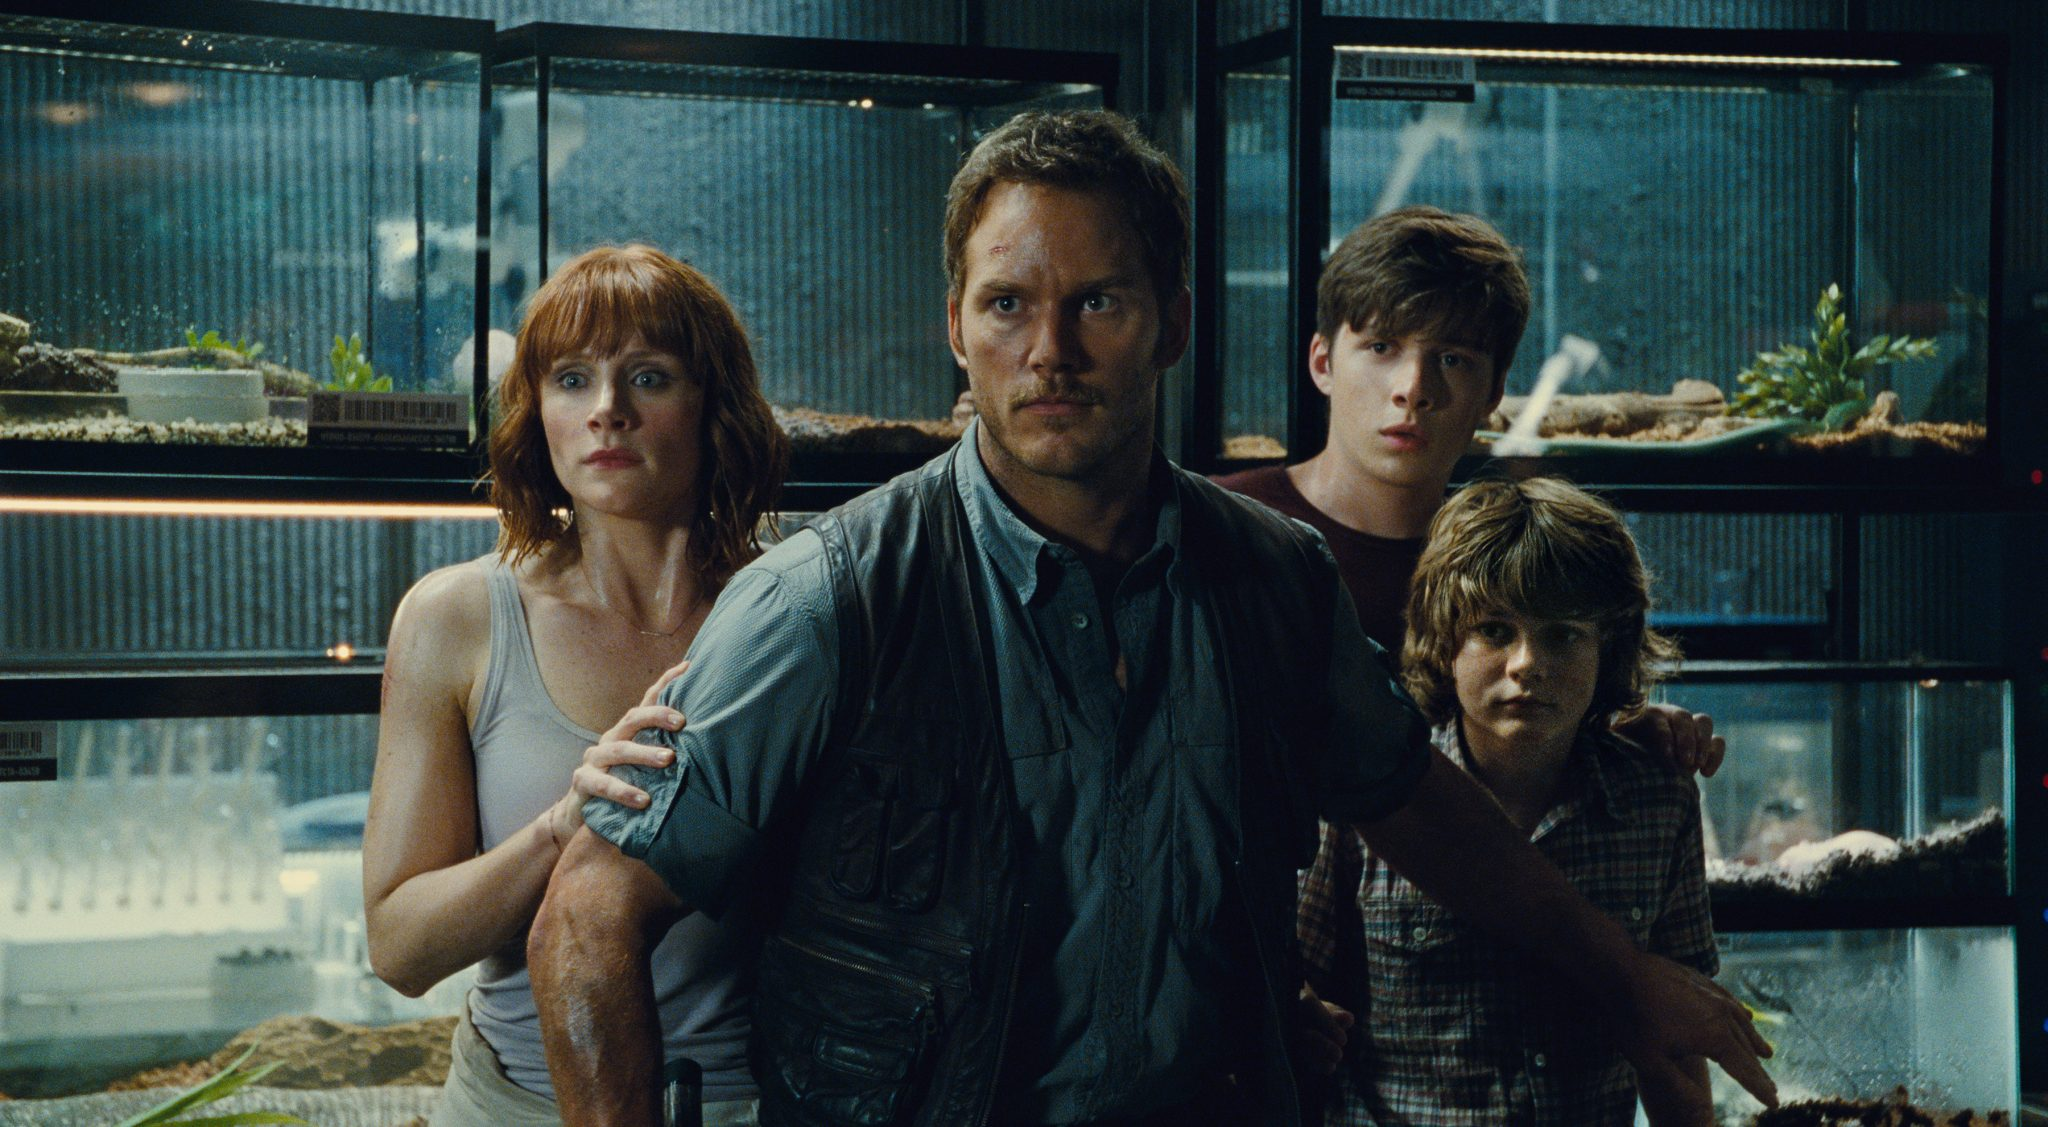 Jurassic World trilogy planned by Steven Spielberg and Colin Trevorrow - without the studio even knowing